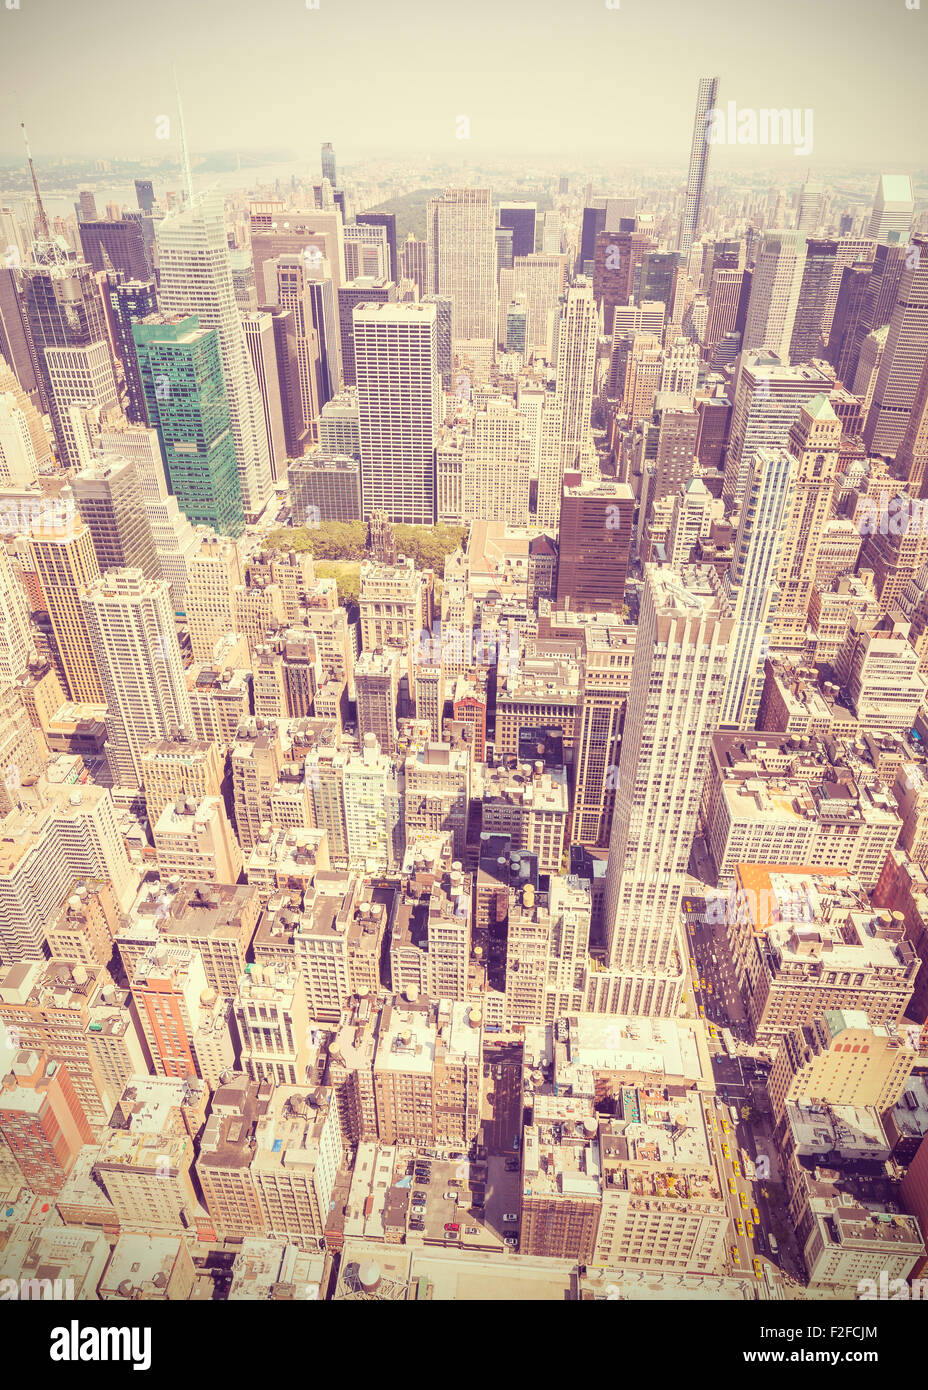 Retro style aerial picture of Manhattan, New York City downtown, USA. - Stock Image